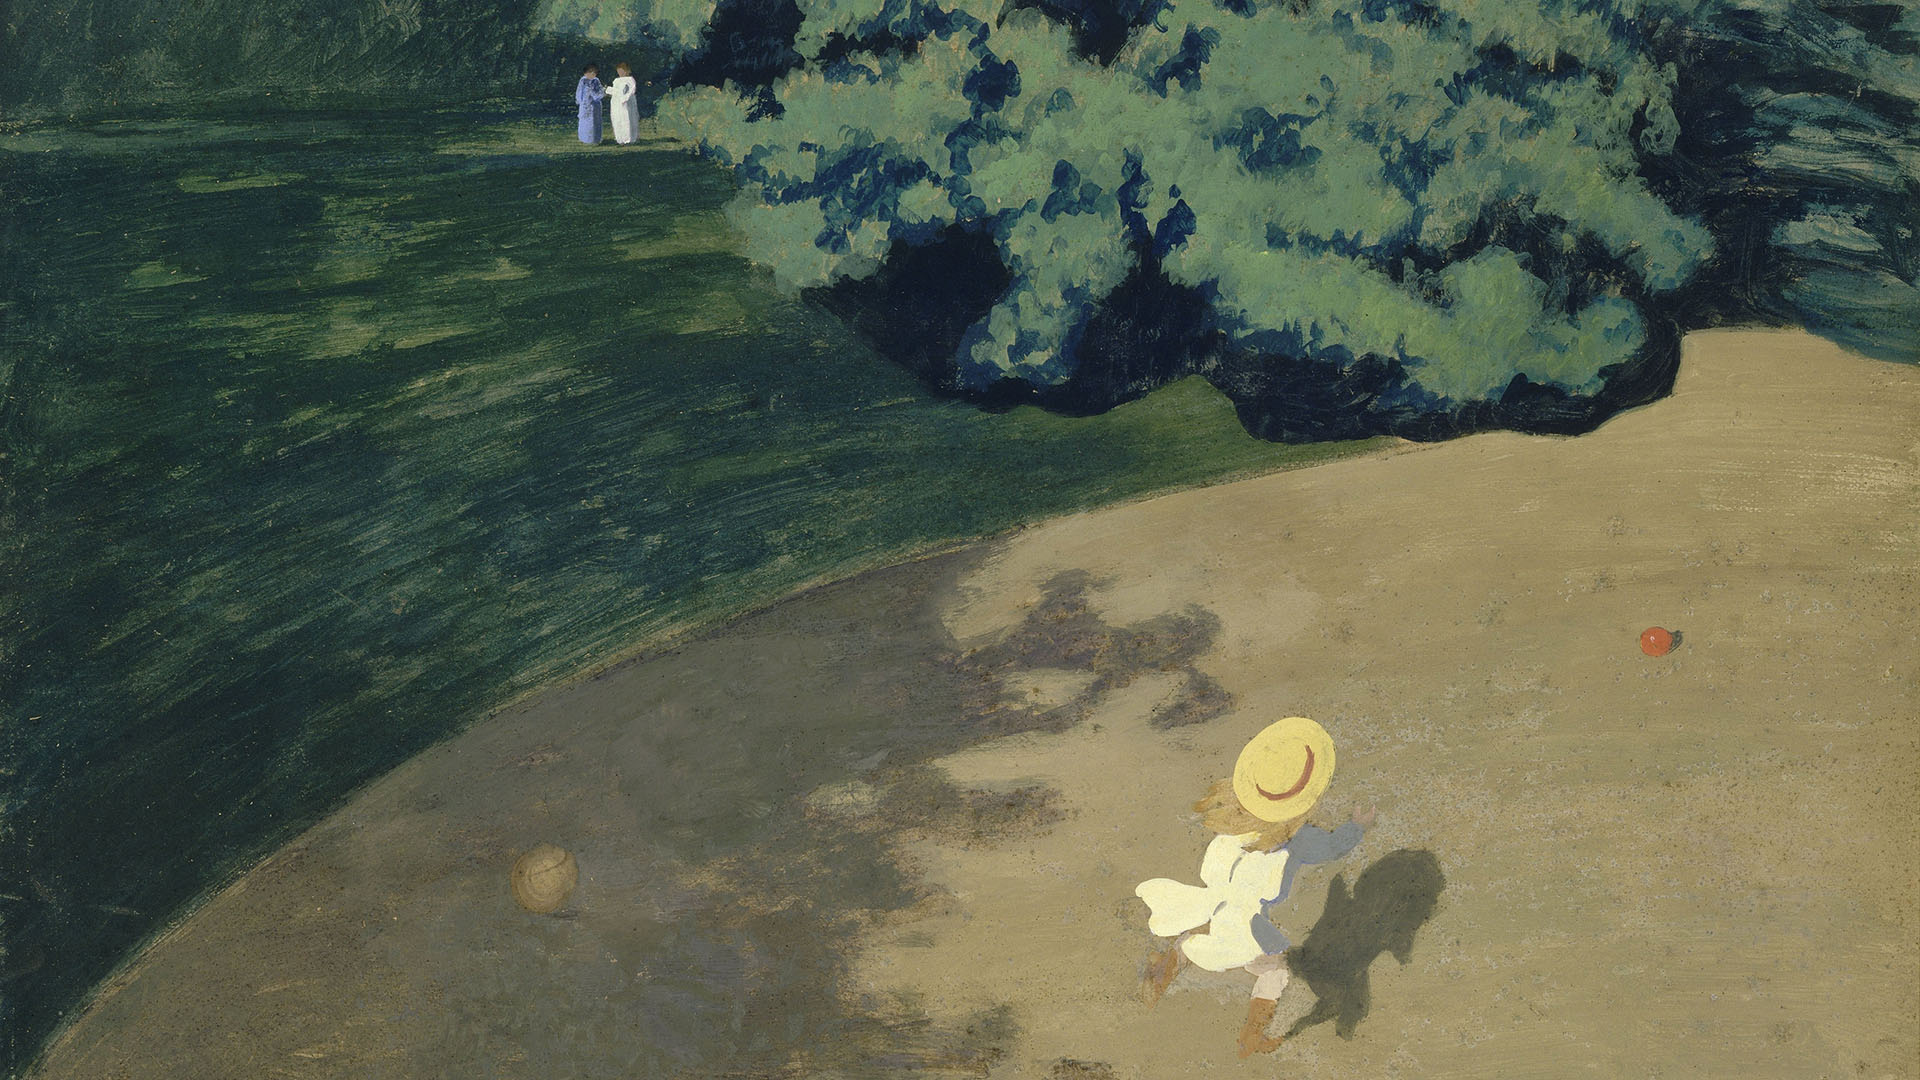 Felix Vallotton - The Ball 1920x1080